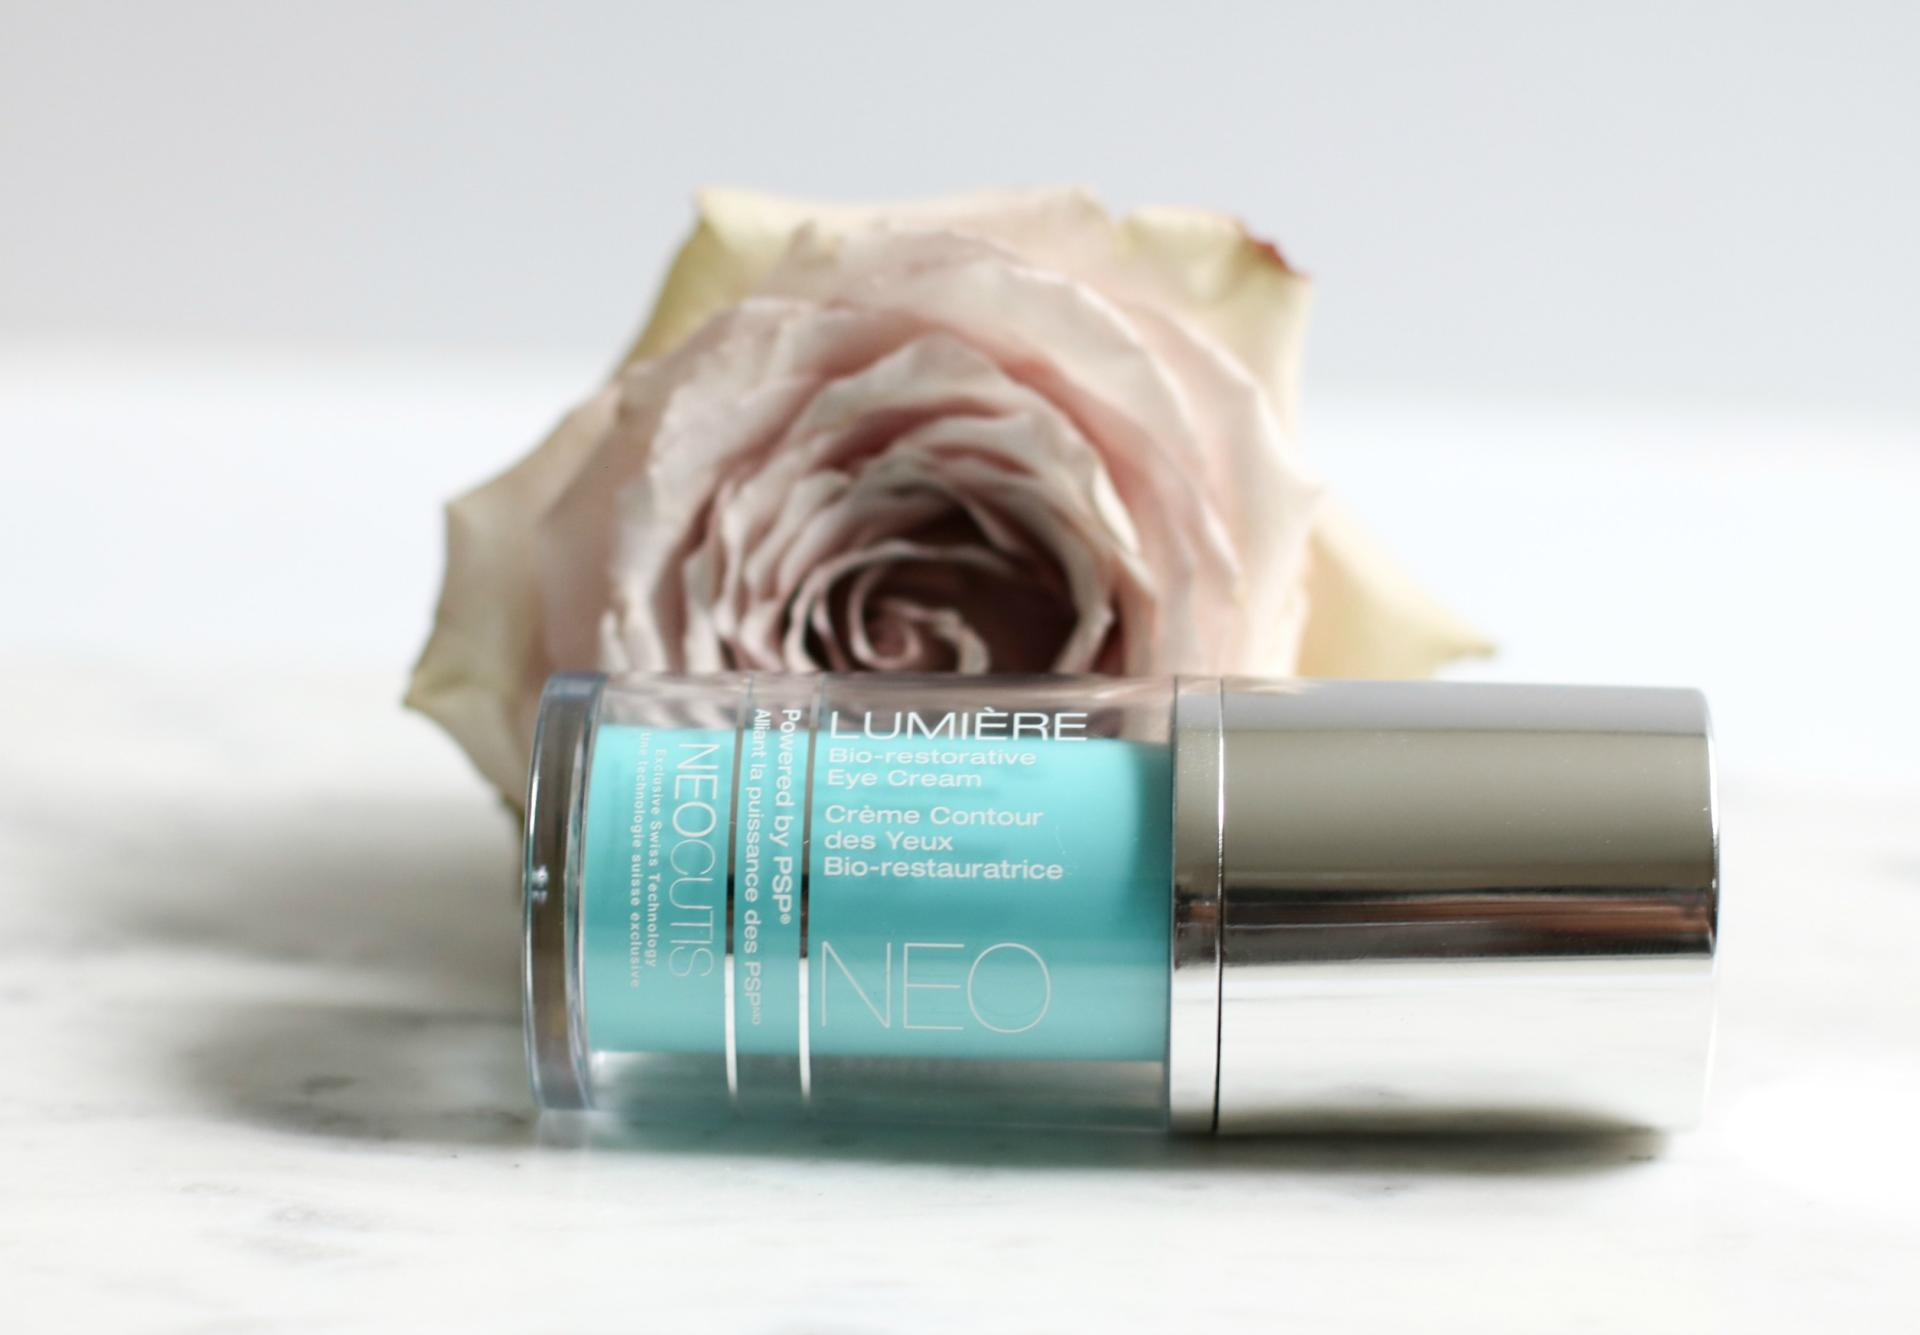 Neo Cutis Lumiere Eye Cream - Concept Medical